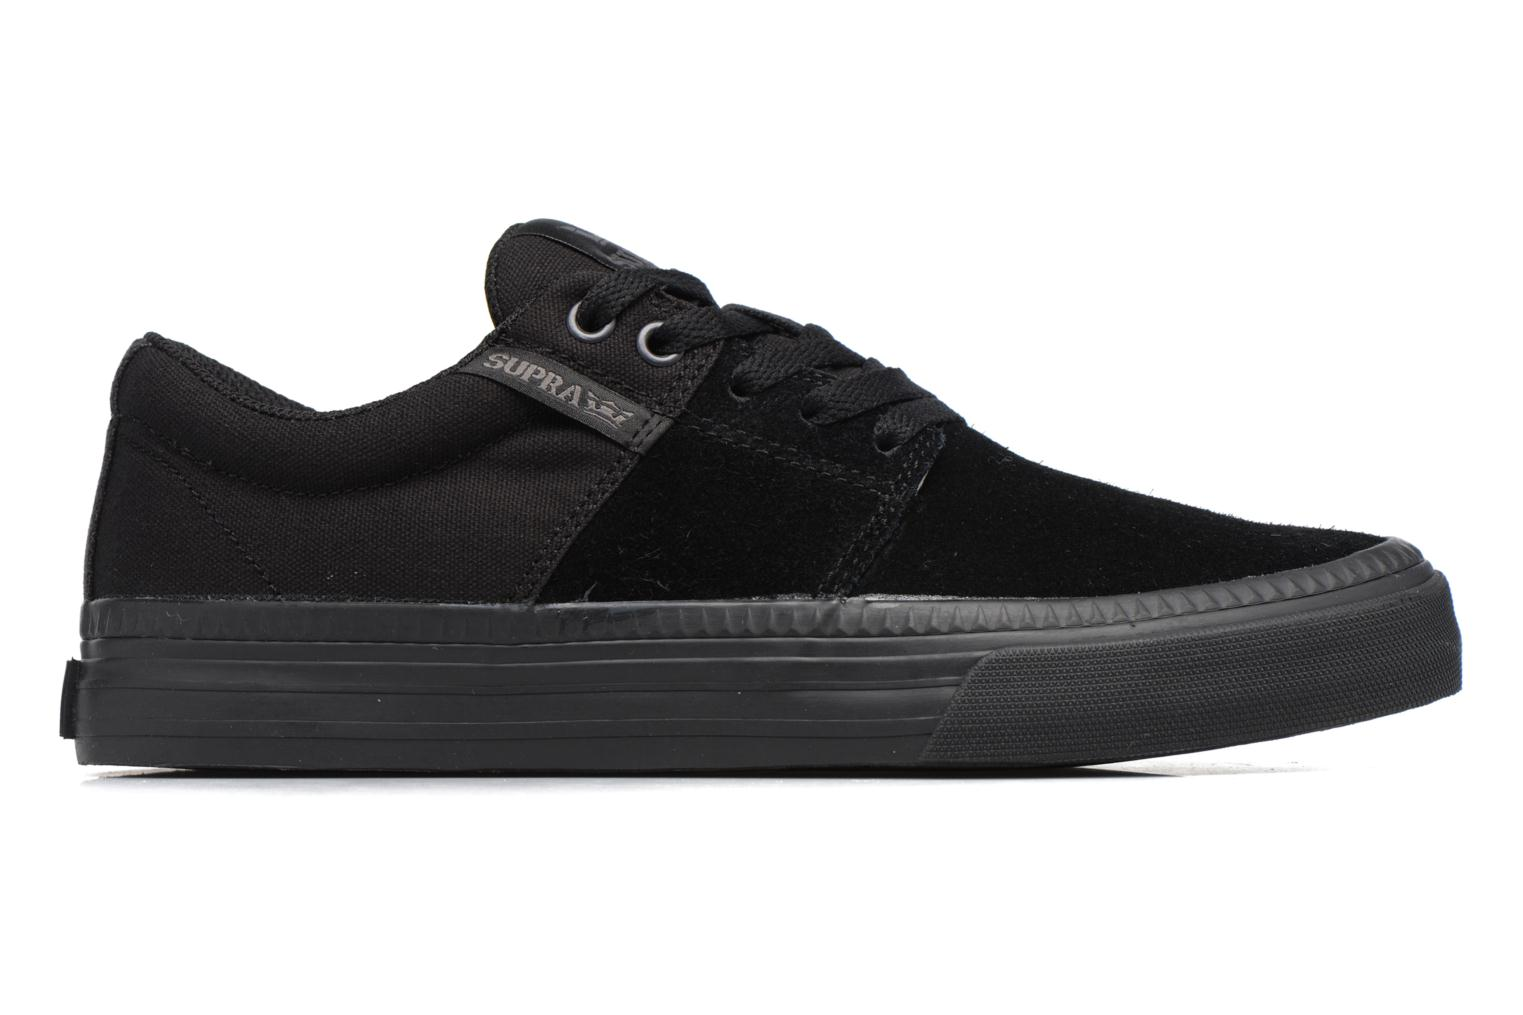 Stacks II Vulc Hf Black-Black-M